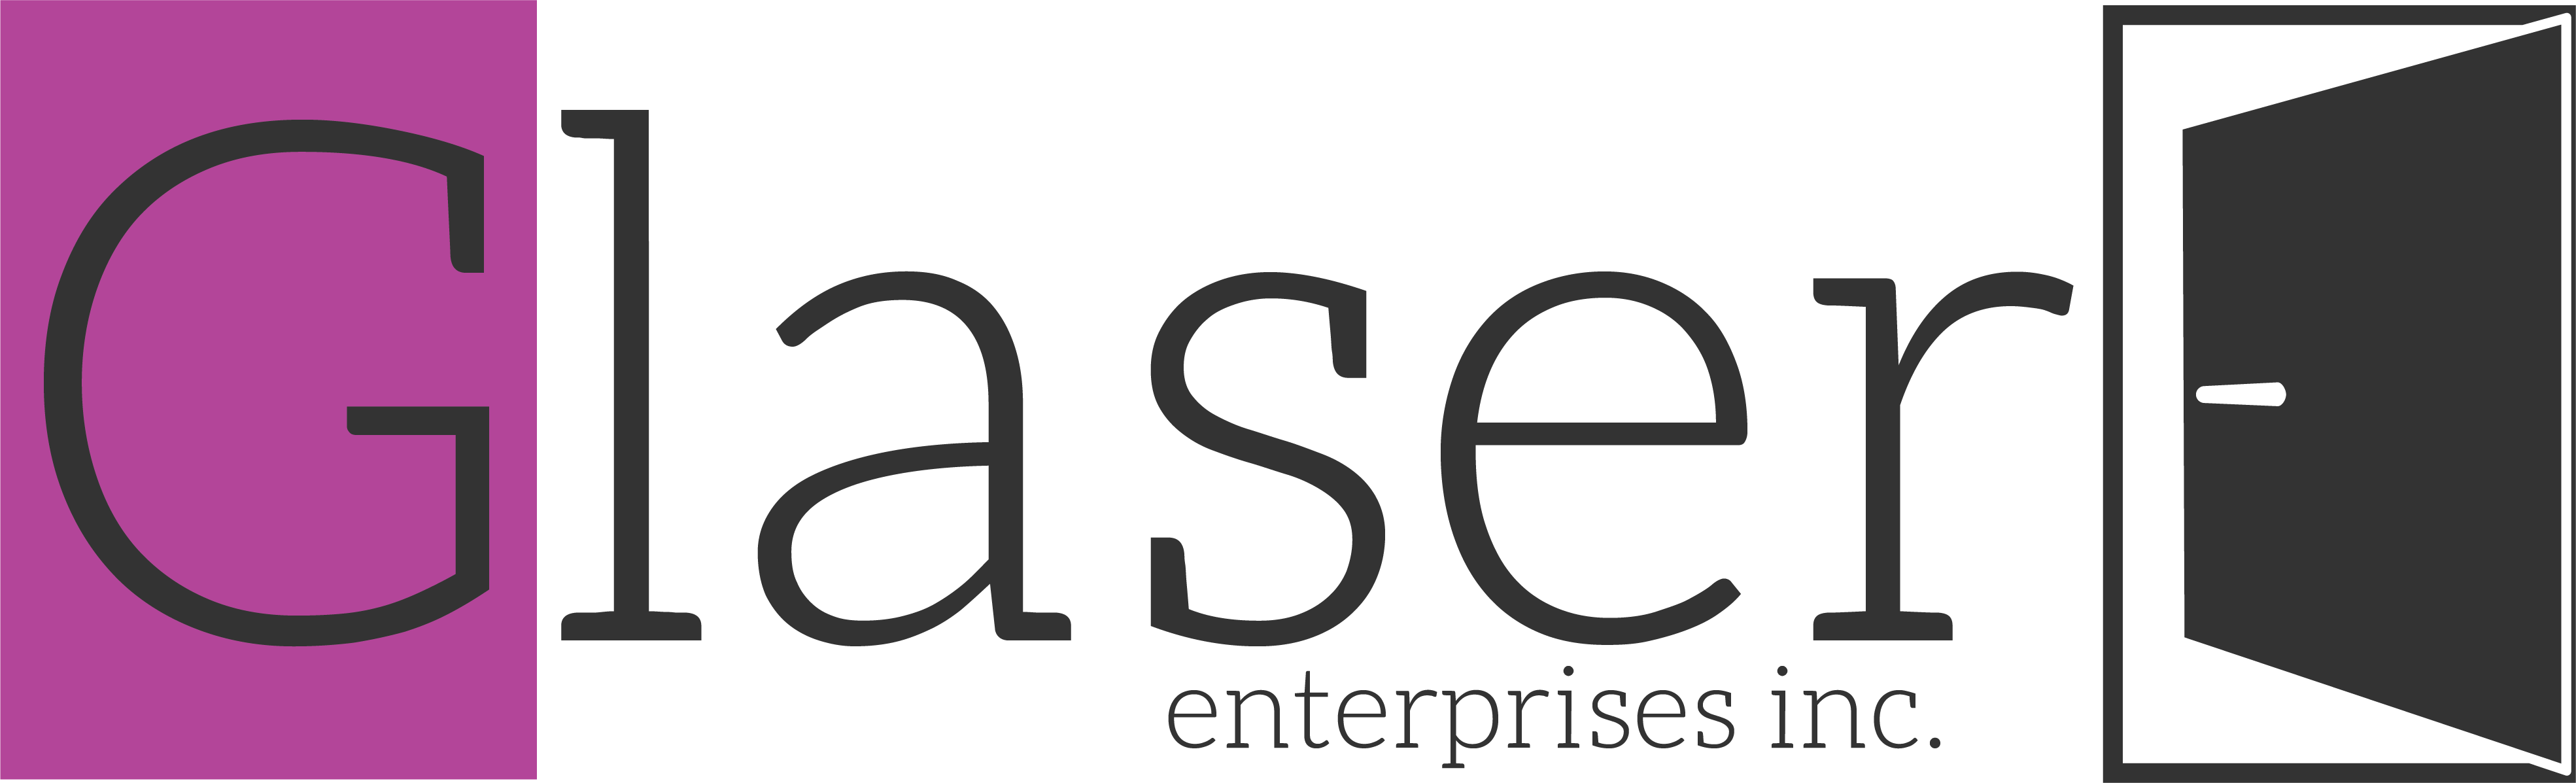 Glaser Enterprises